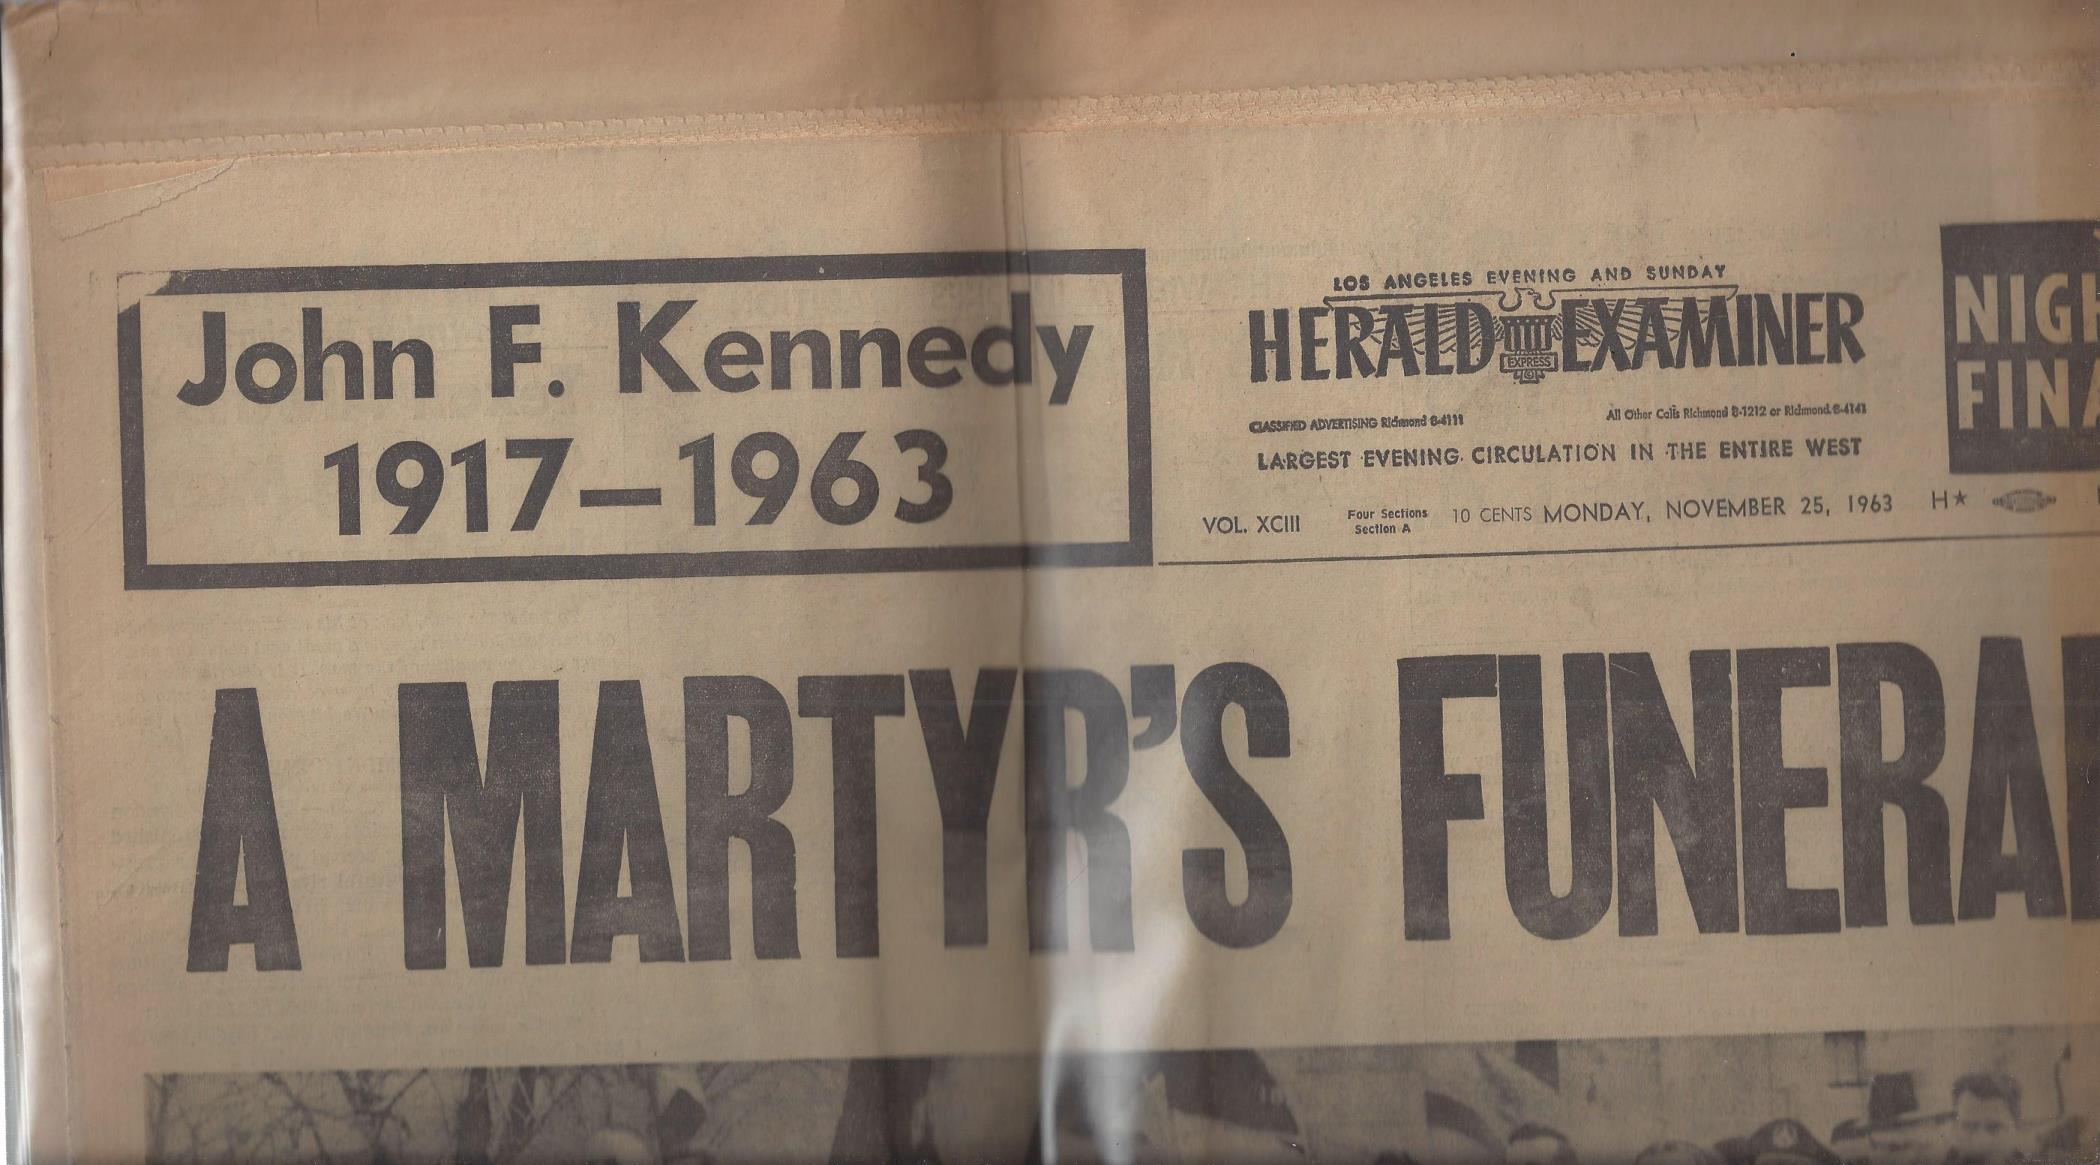 "Los Angeles Evening and Sunday Herald Examiner: ""A Martyr's Funeral"" (Monday, November 25, 1963), Herald Examiner"